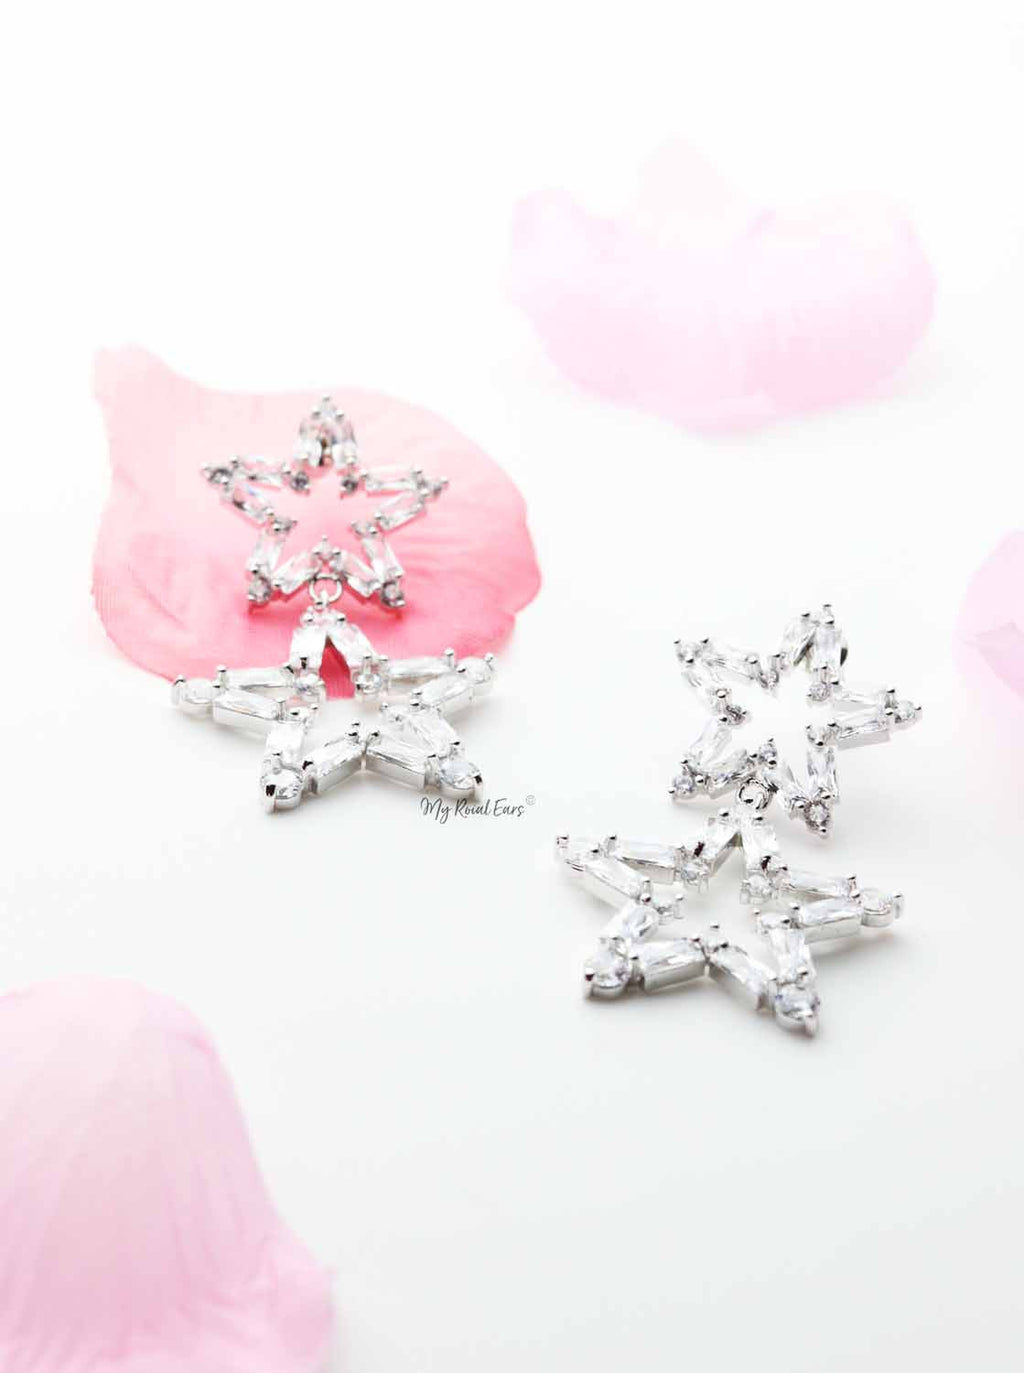 Roses- Glits Stars Drop Earrings - My Roial Ears LTD